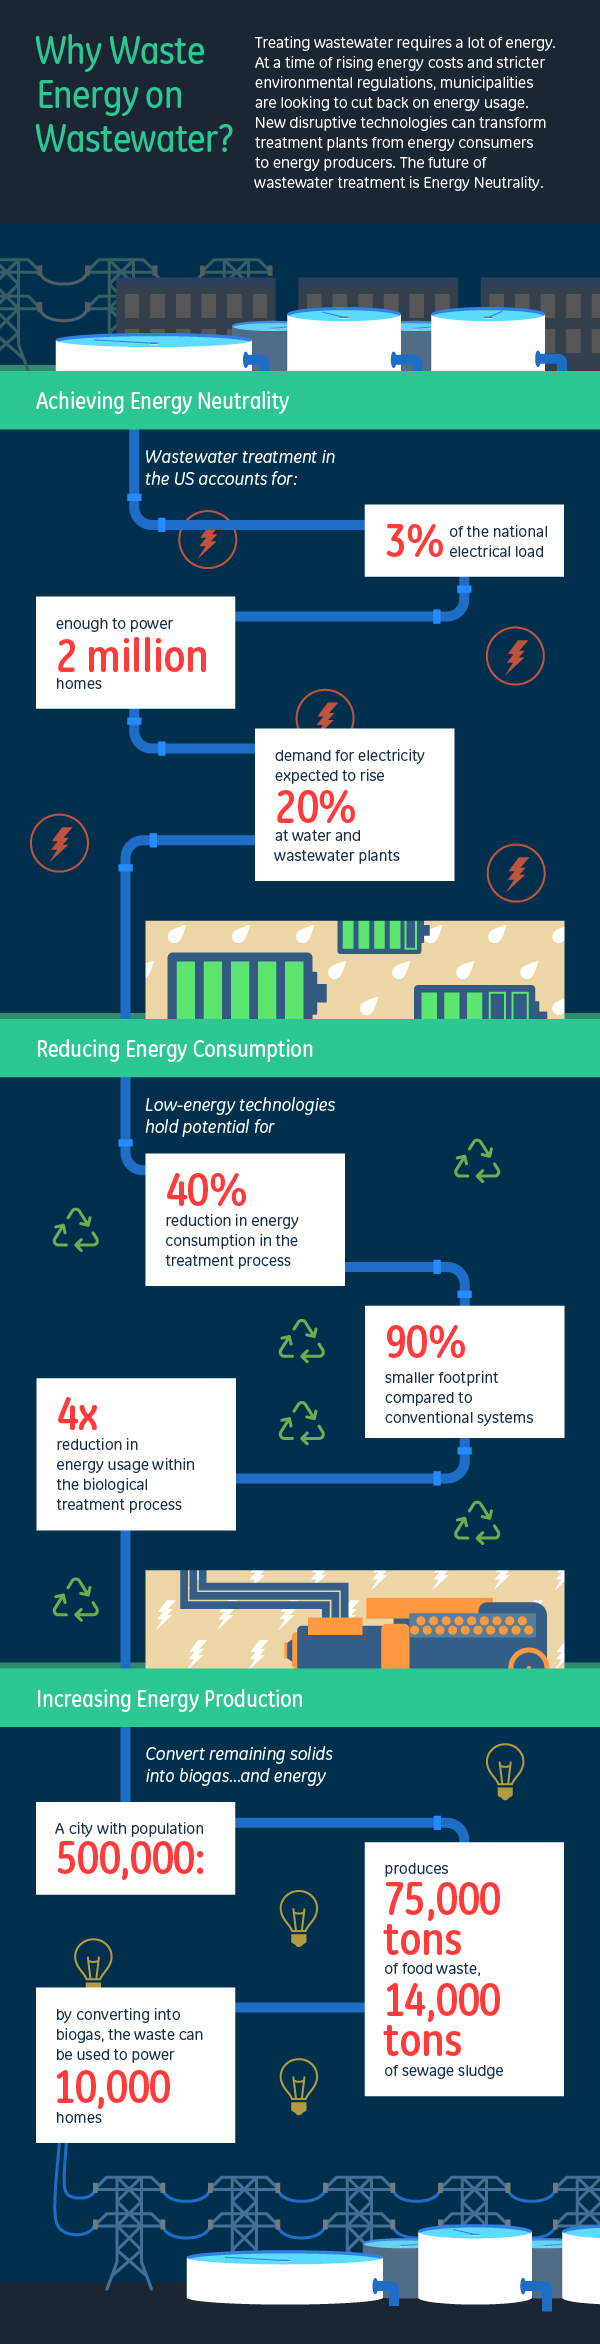 GE_Infographic_wastewater_energy_Revised